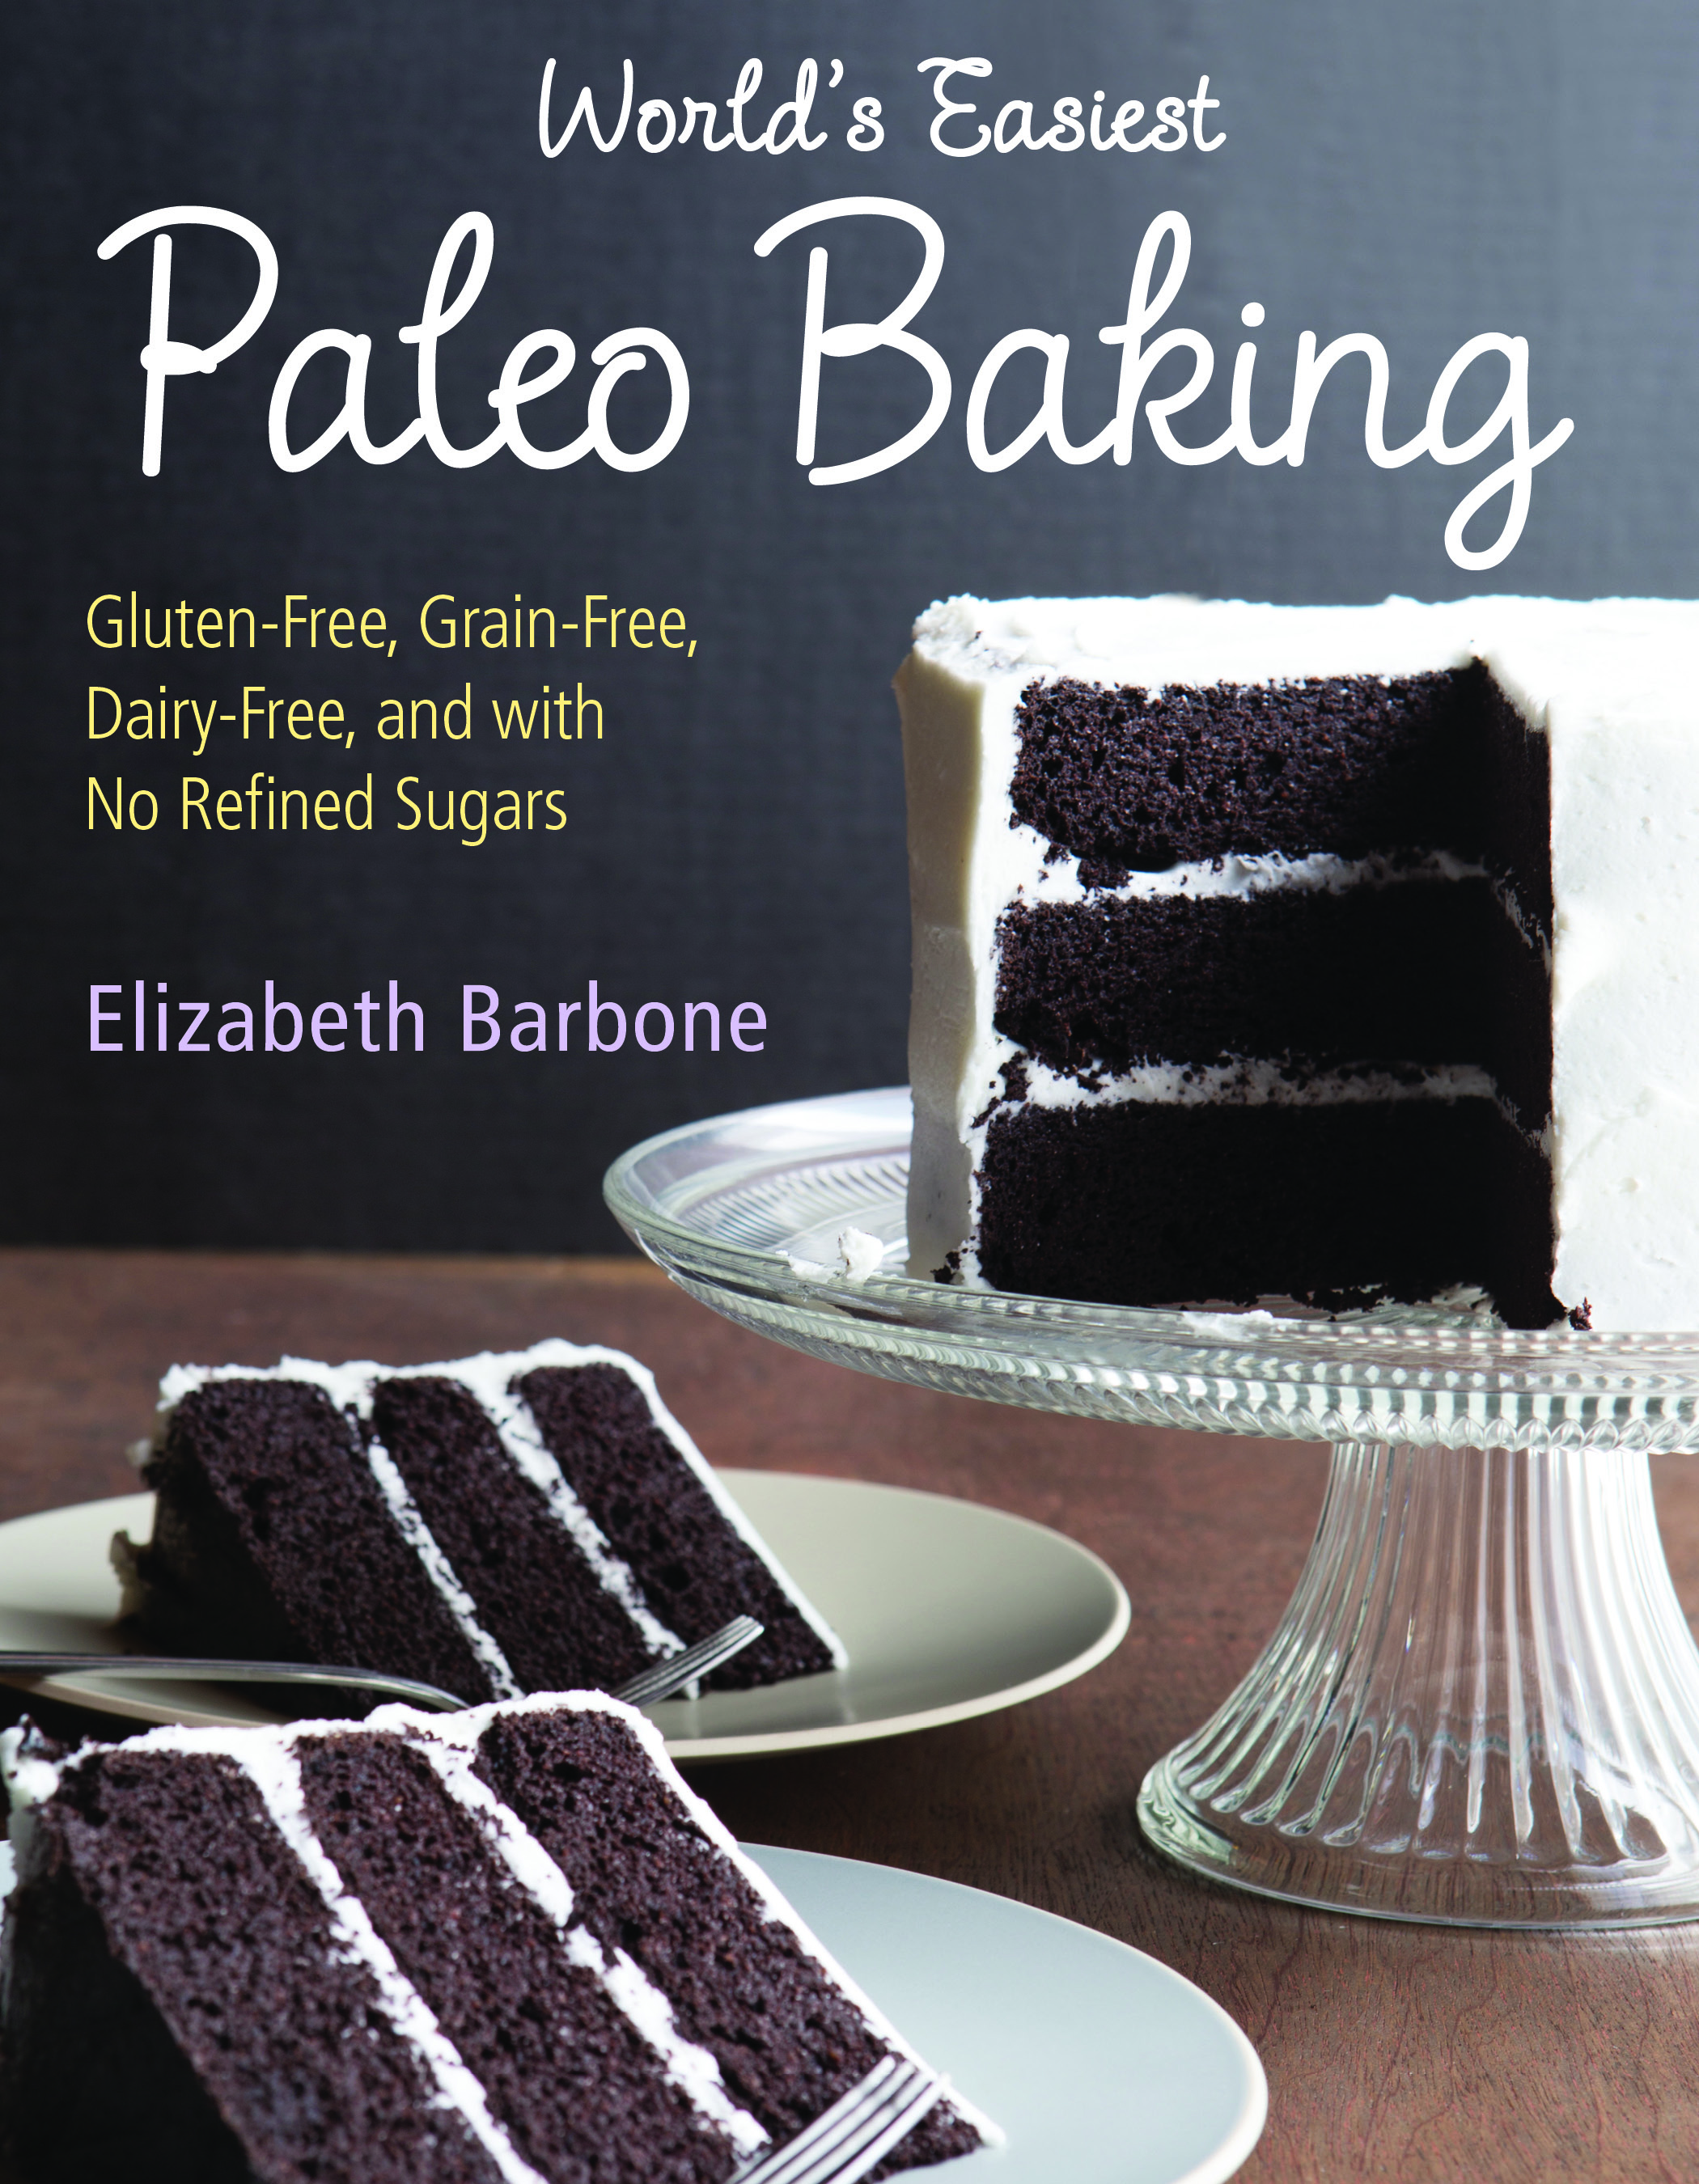 1. World's Easiest Paleo Baking COVER